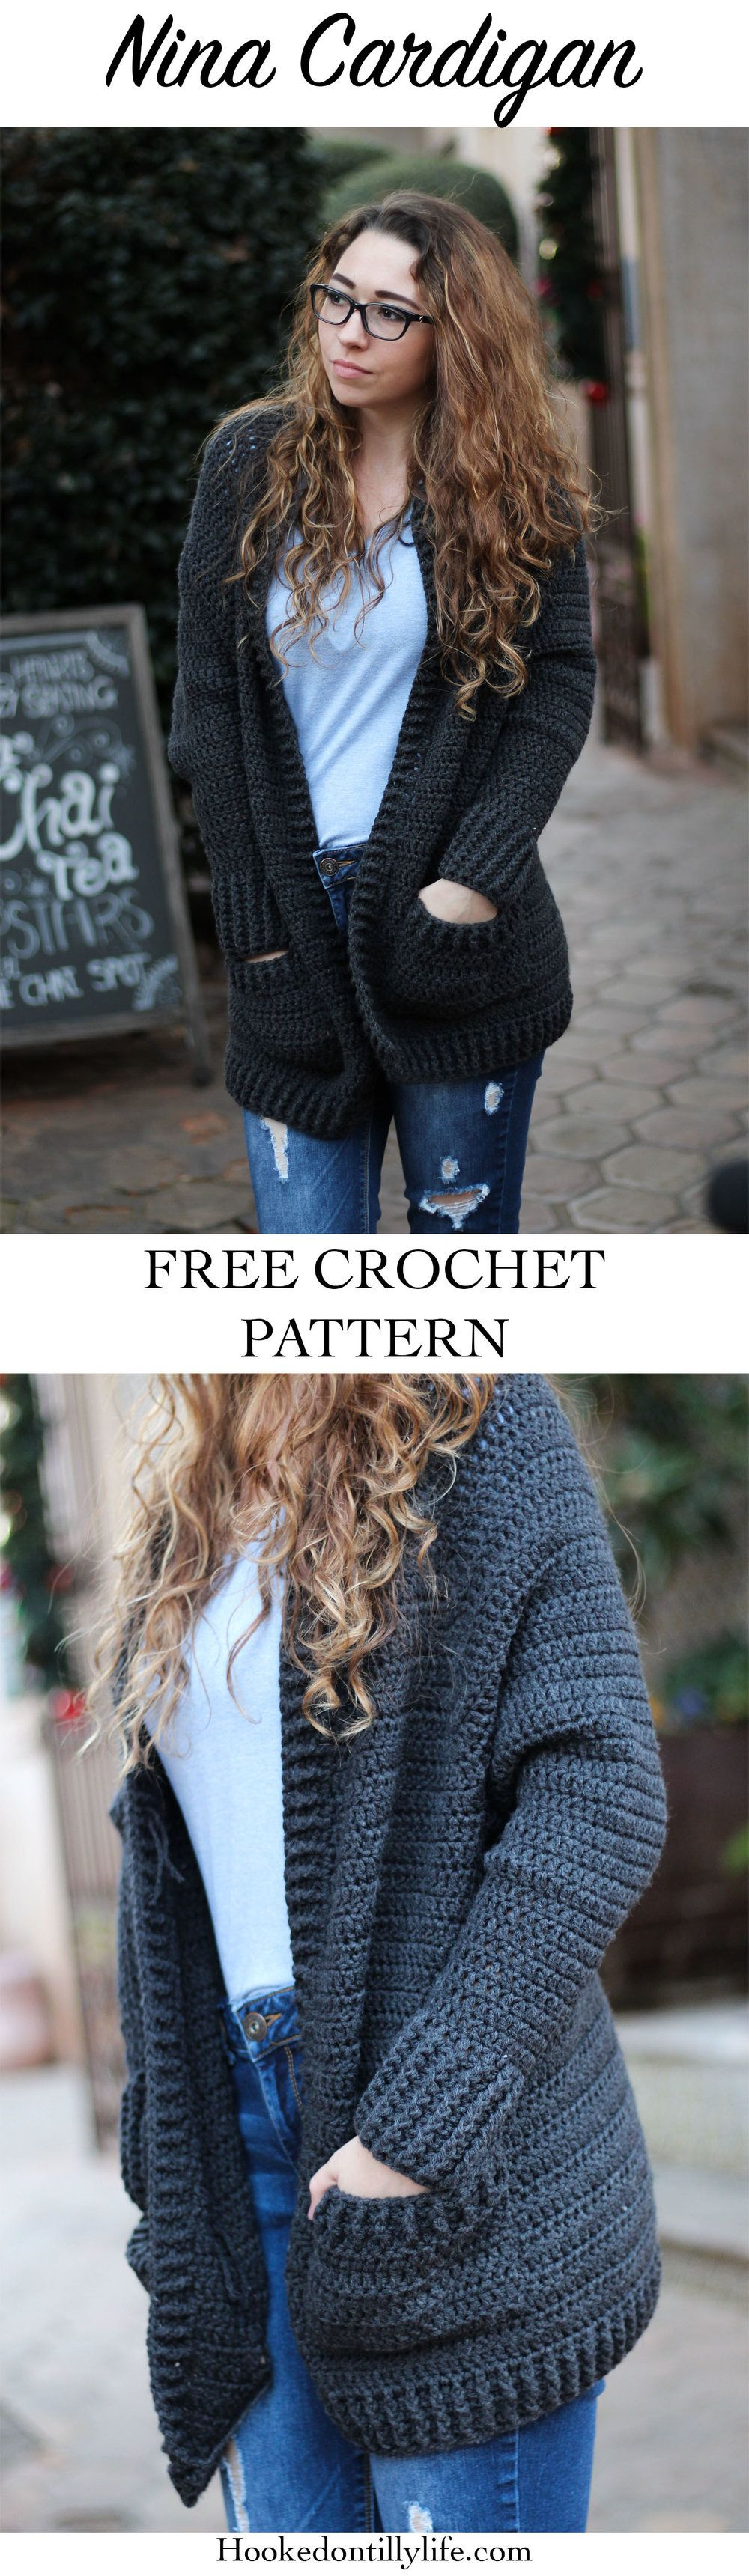 Nina Cardigan - Free Crochet Pattern — Hooked On Tilly